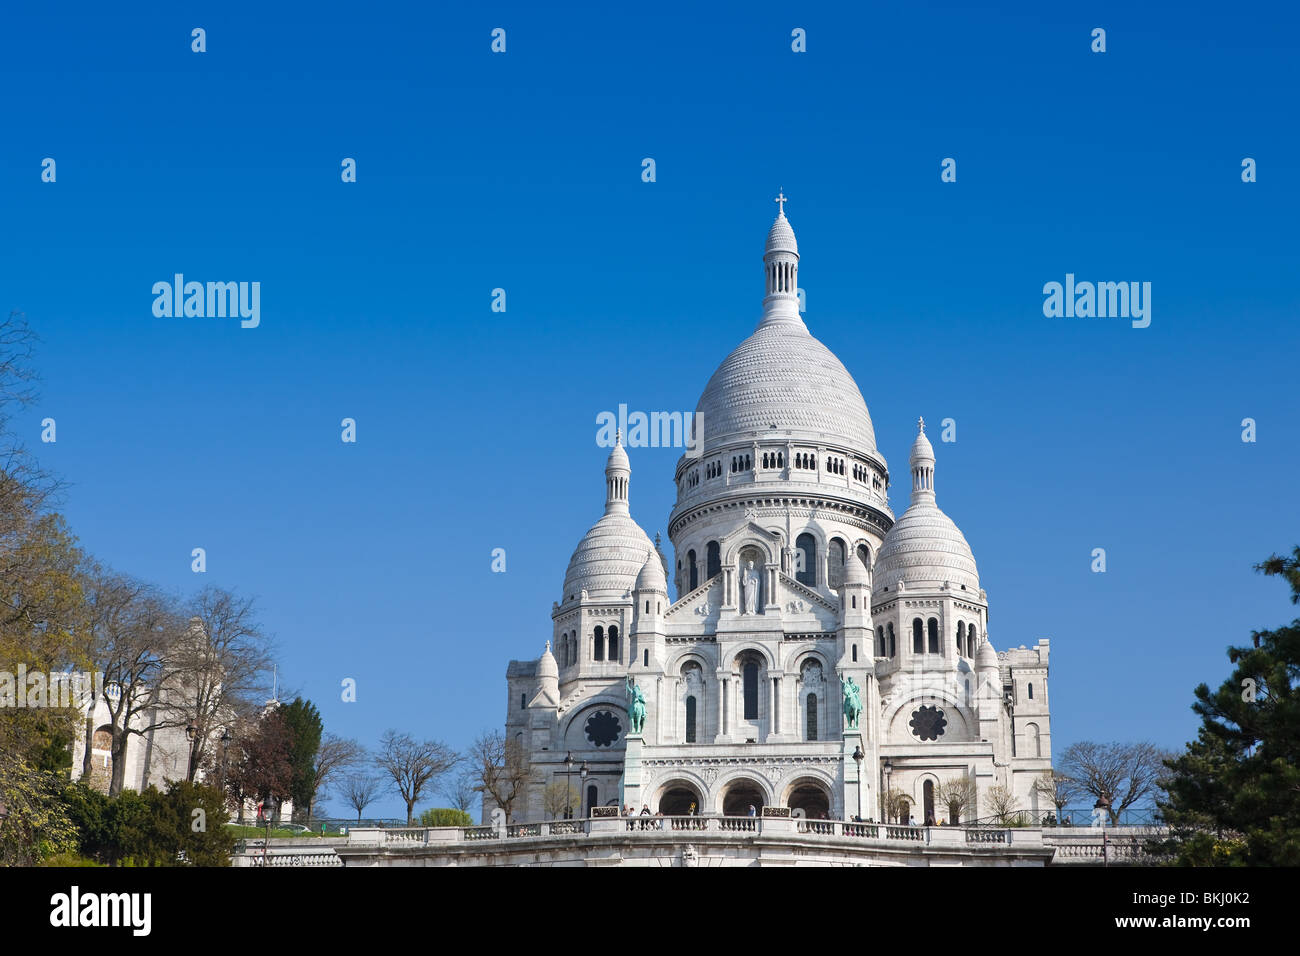 The Basilica of the Sacred Heart of Jesus, commonly known as Sacre-Coeur Basilica, Montmartre, Paris - Stock Image